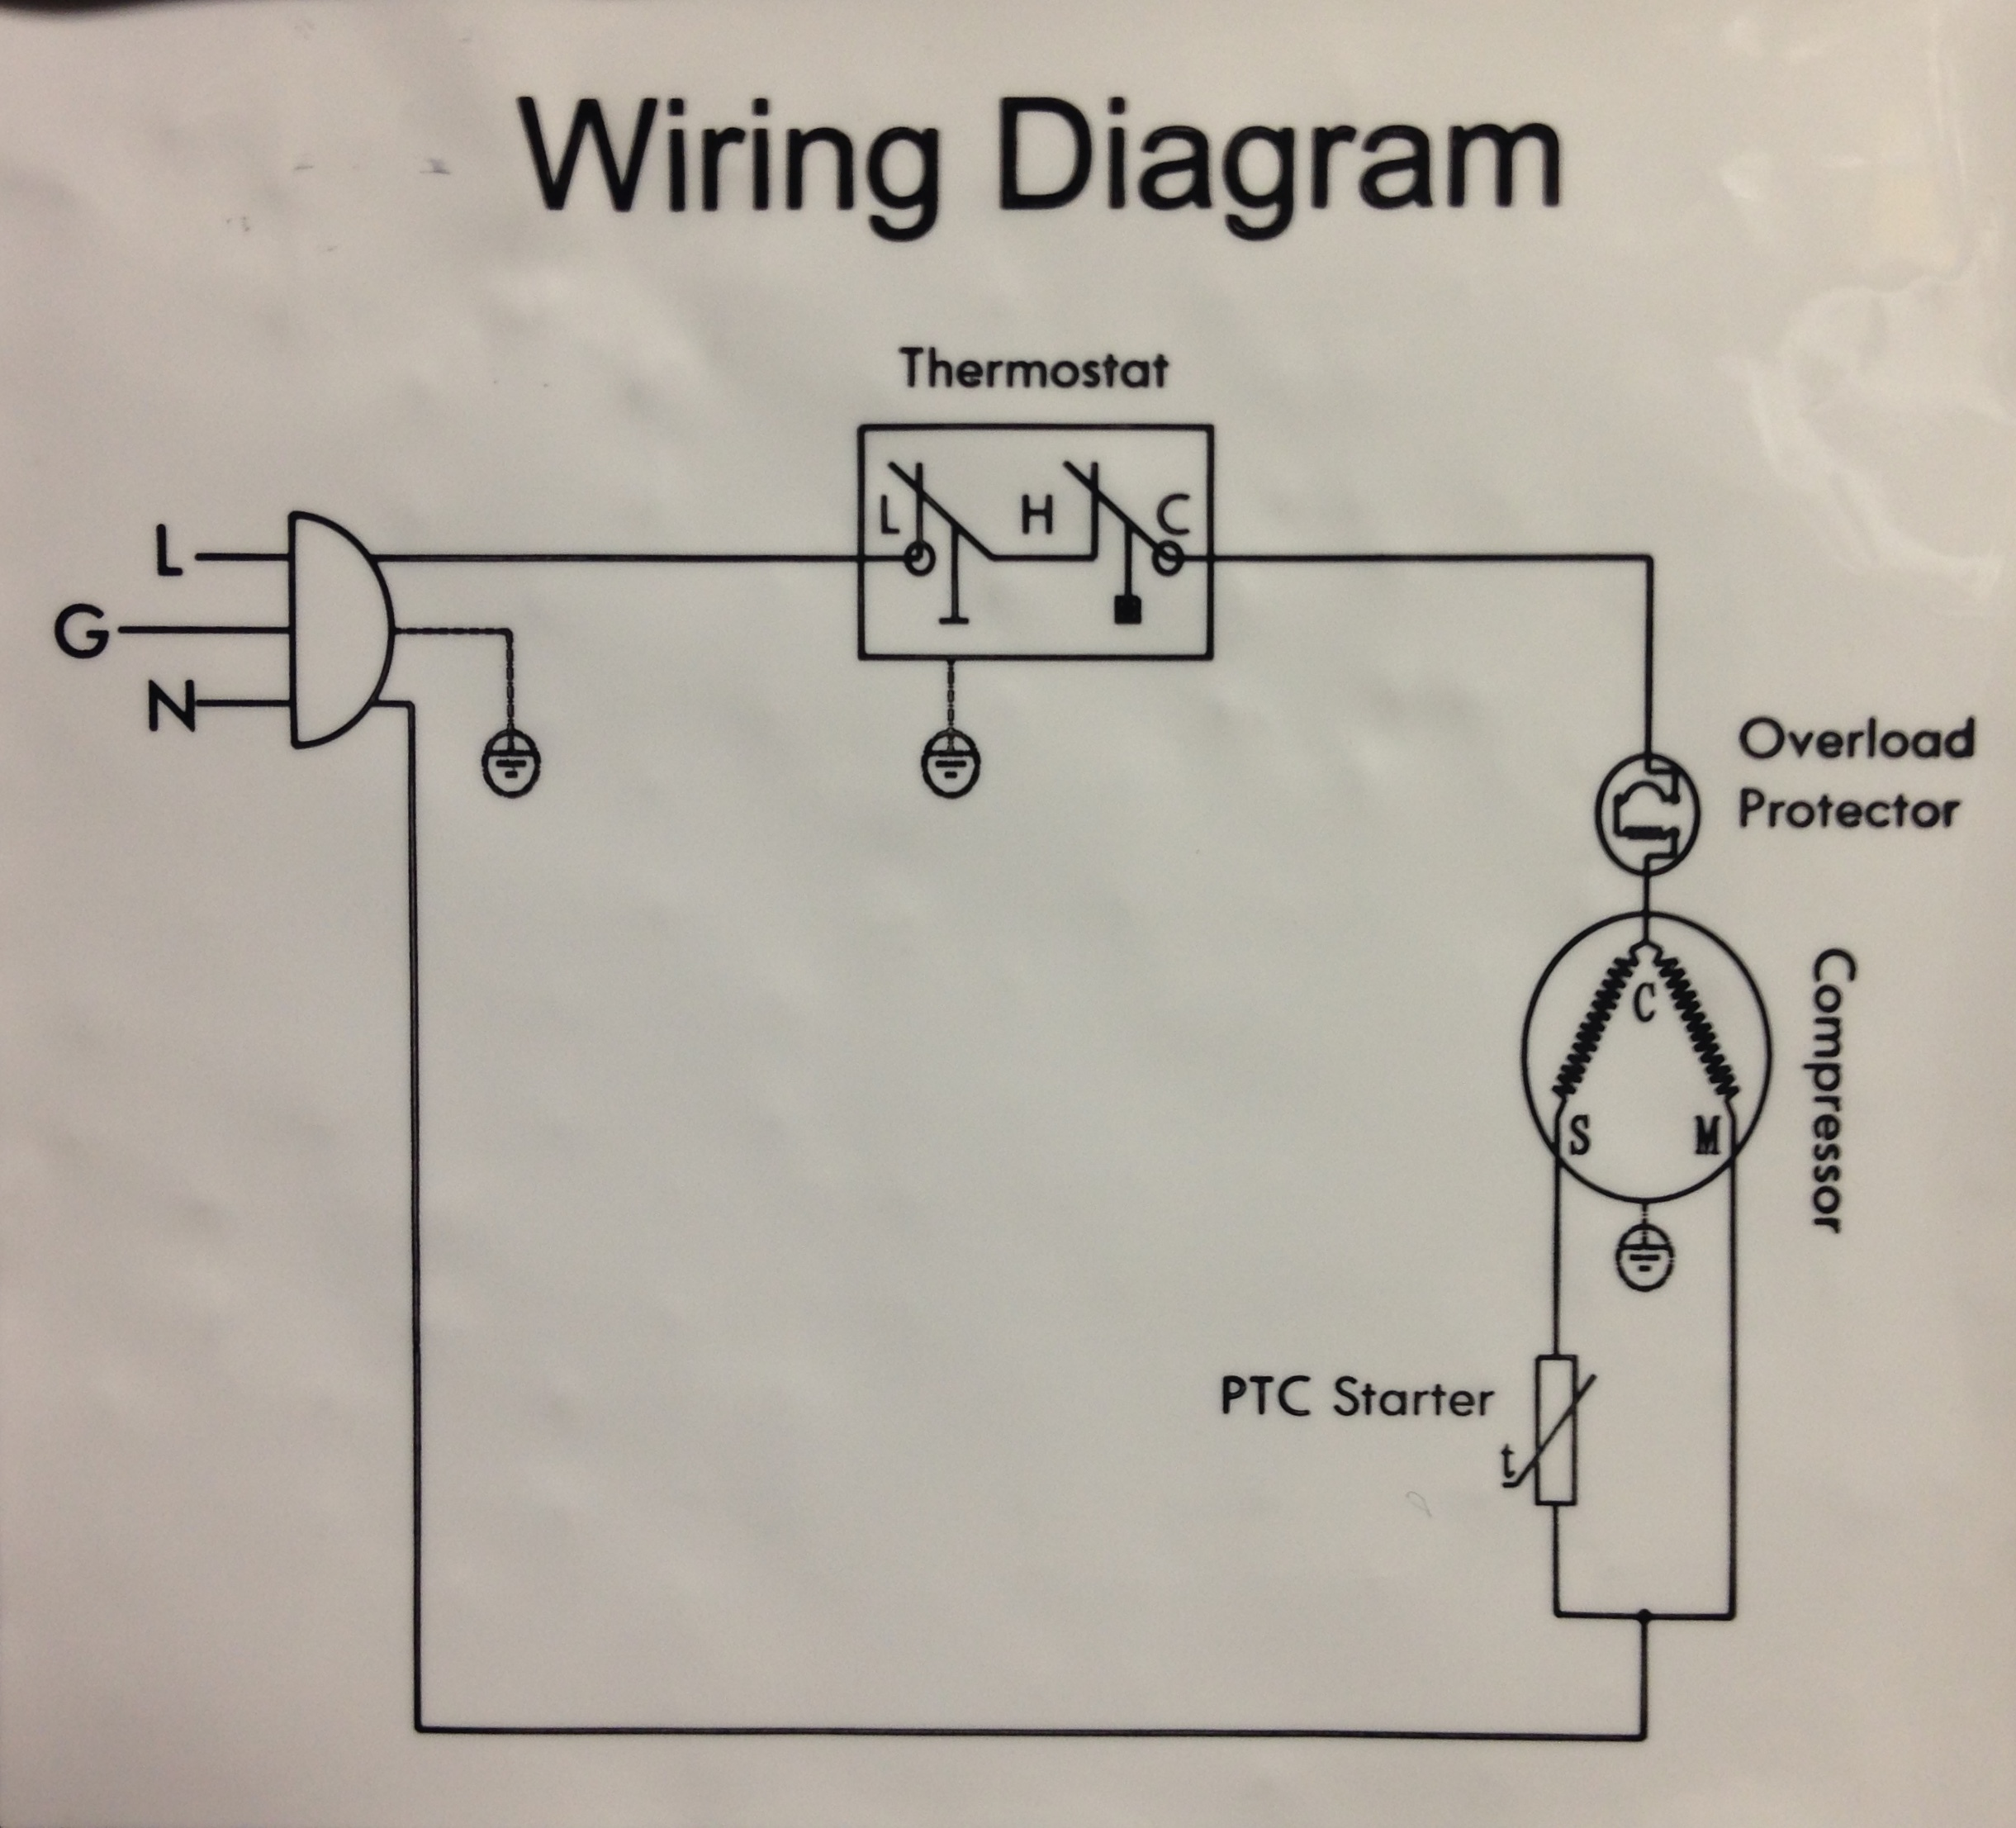 c5986337b4249150884d4e057ccb08b32fe4028e new build electronics newb diagram help fridge build brewpi refrigerator compressor wiring diagram at bakdesigns.co